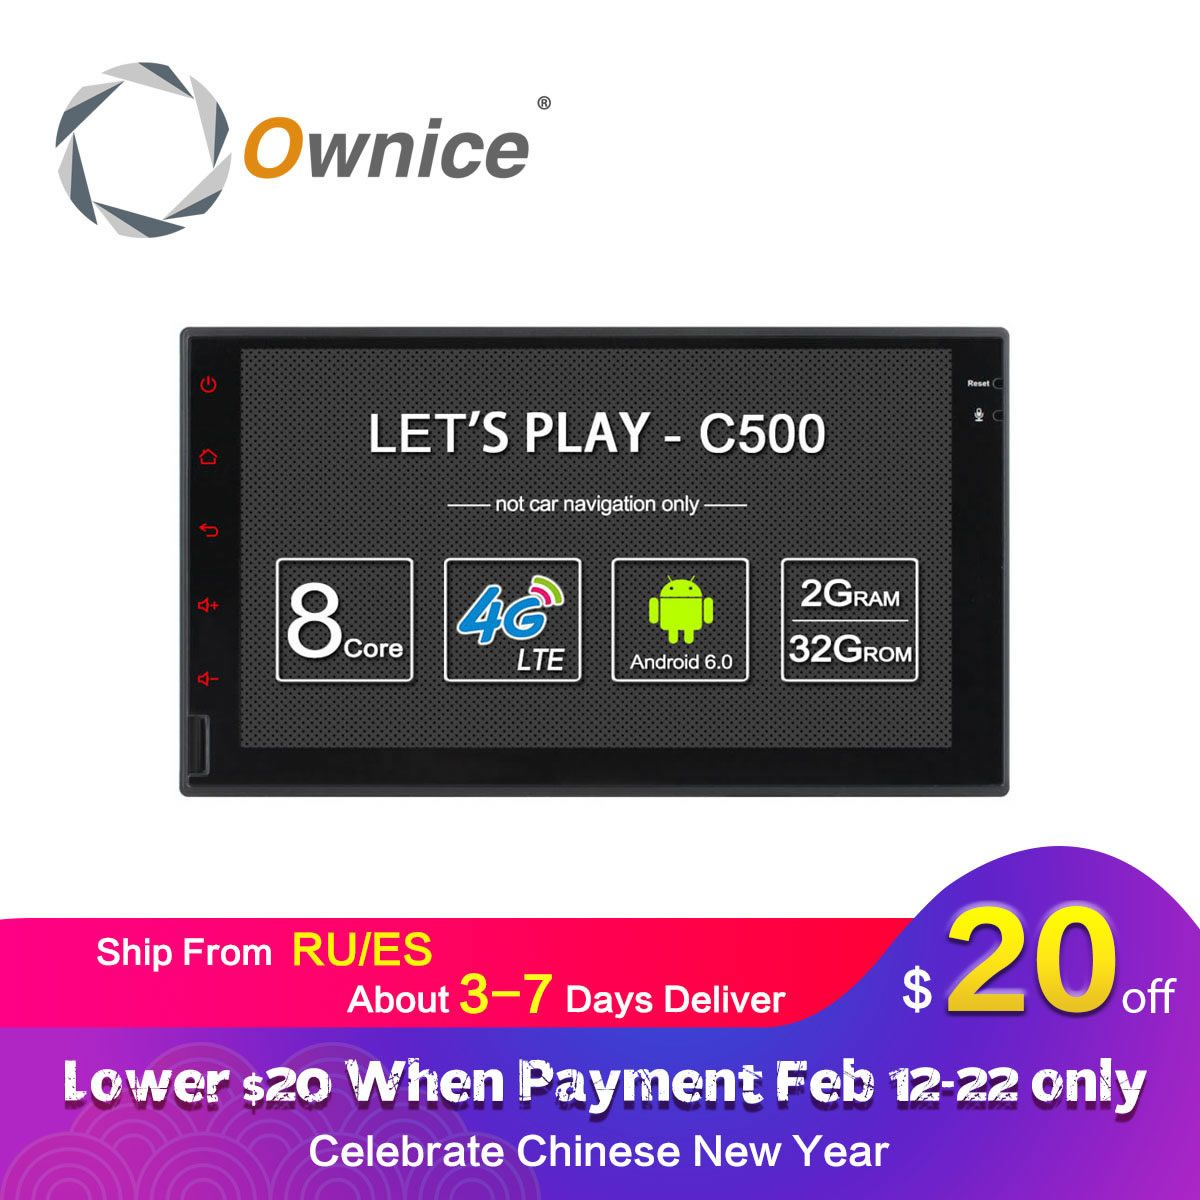 Ownice C500 Octa 8 Core Android 6.0 2G RAM 32GB ROM <font><b>Support</b></font> 4G LTE SIM Network Car GPS 2 din Universal car Radio player no dvd